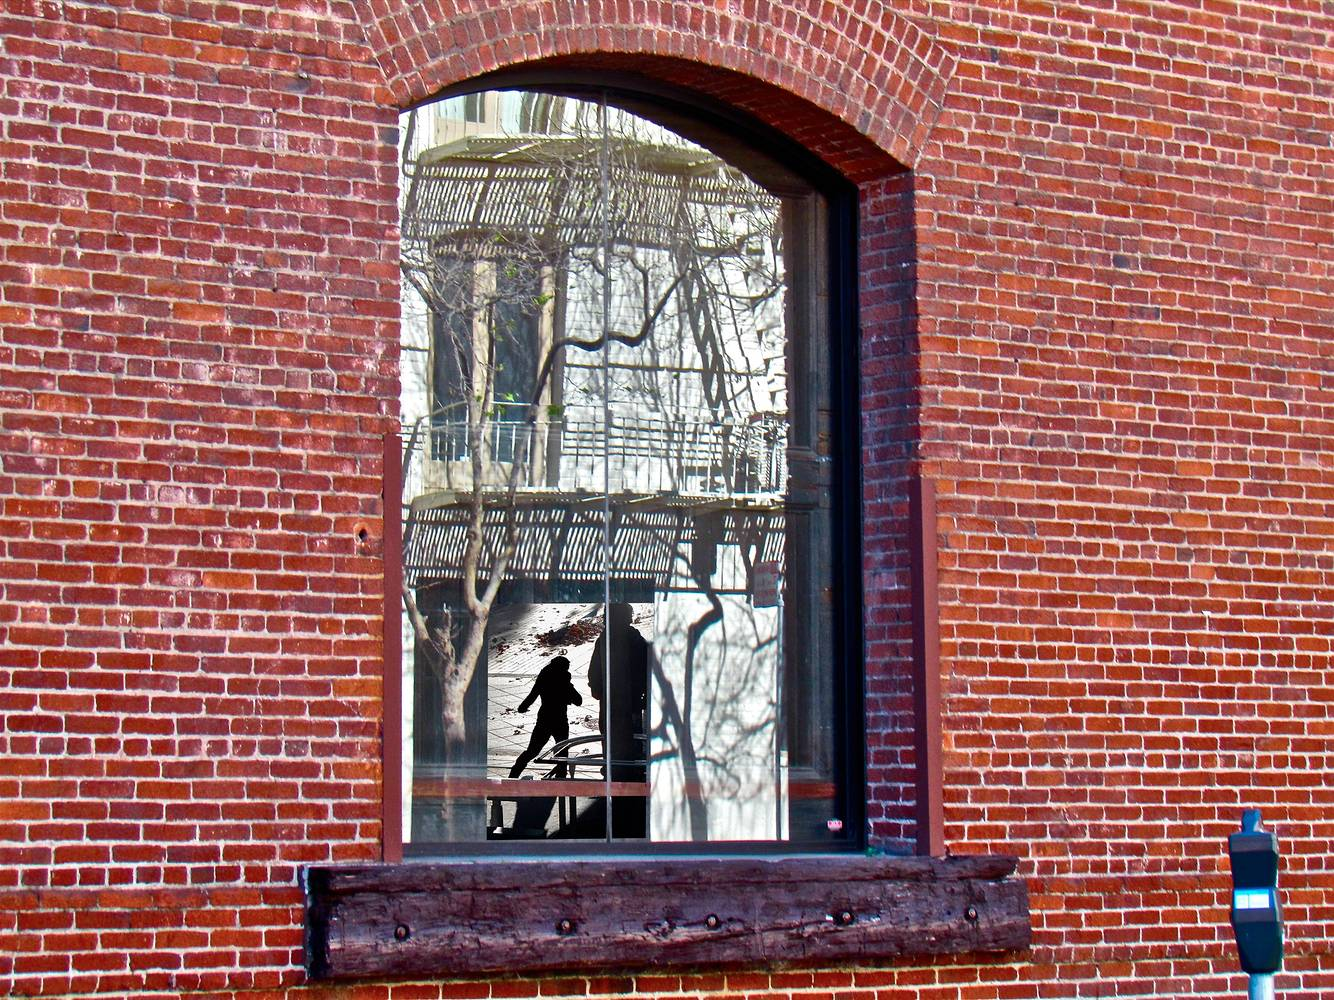 CRIME REFLECTION-IN THE WINDOW by Joeann Edmonds-Matthew